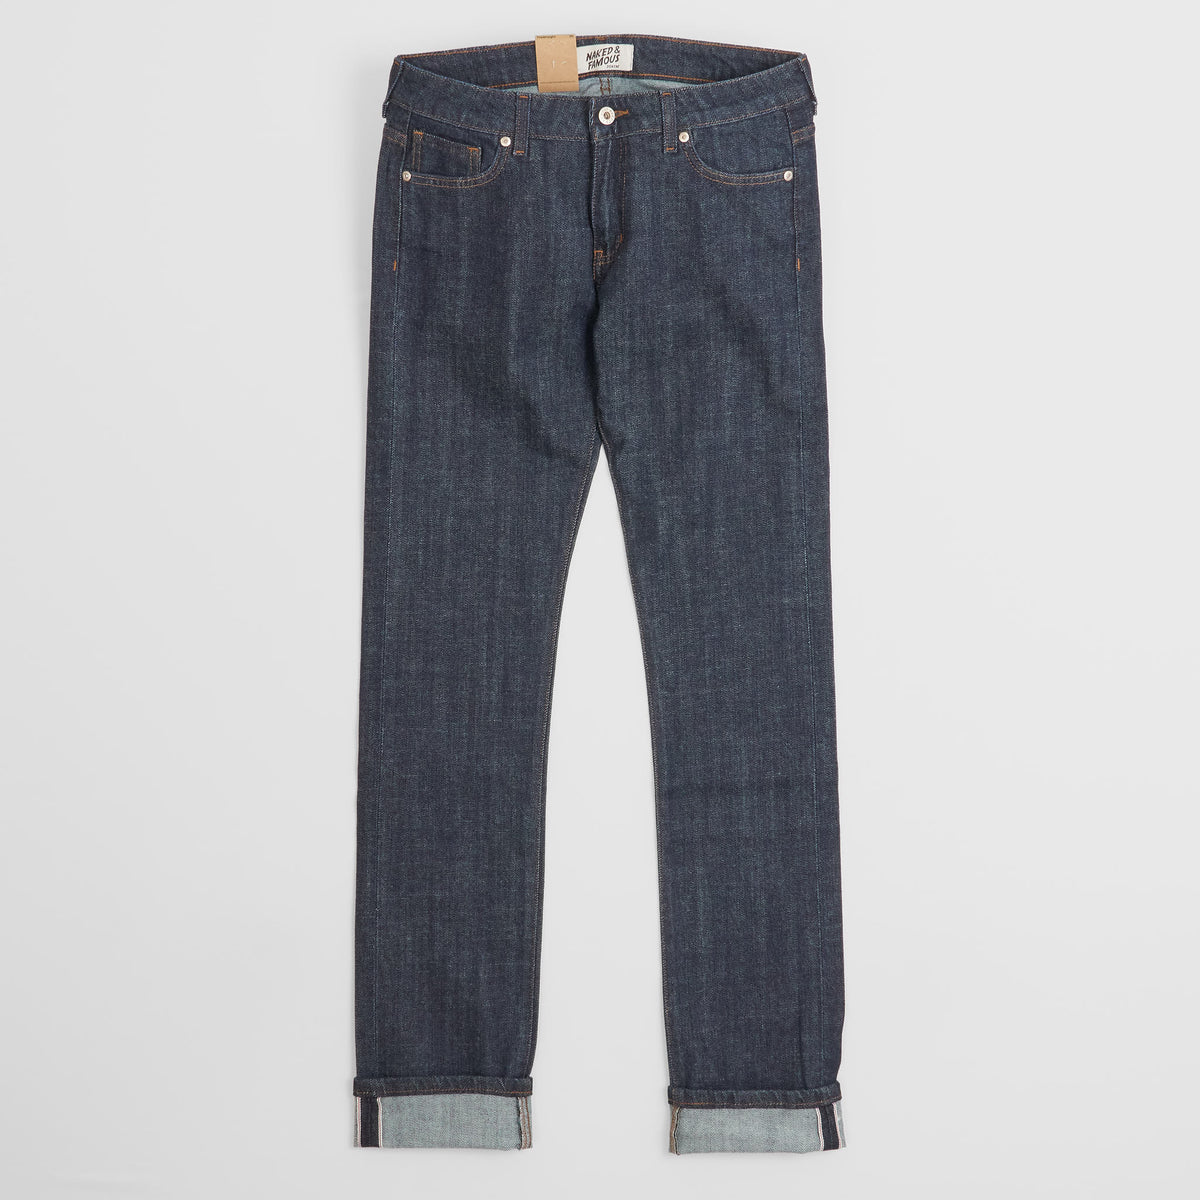 Naked & Famous x DeeCee style Ladies Selvage Denim The Straight Rinsed